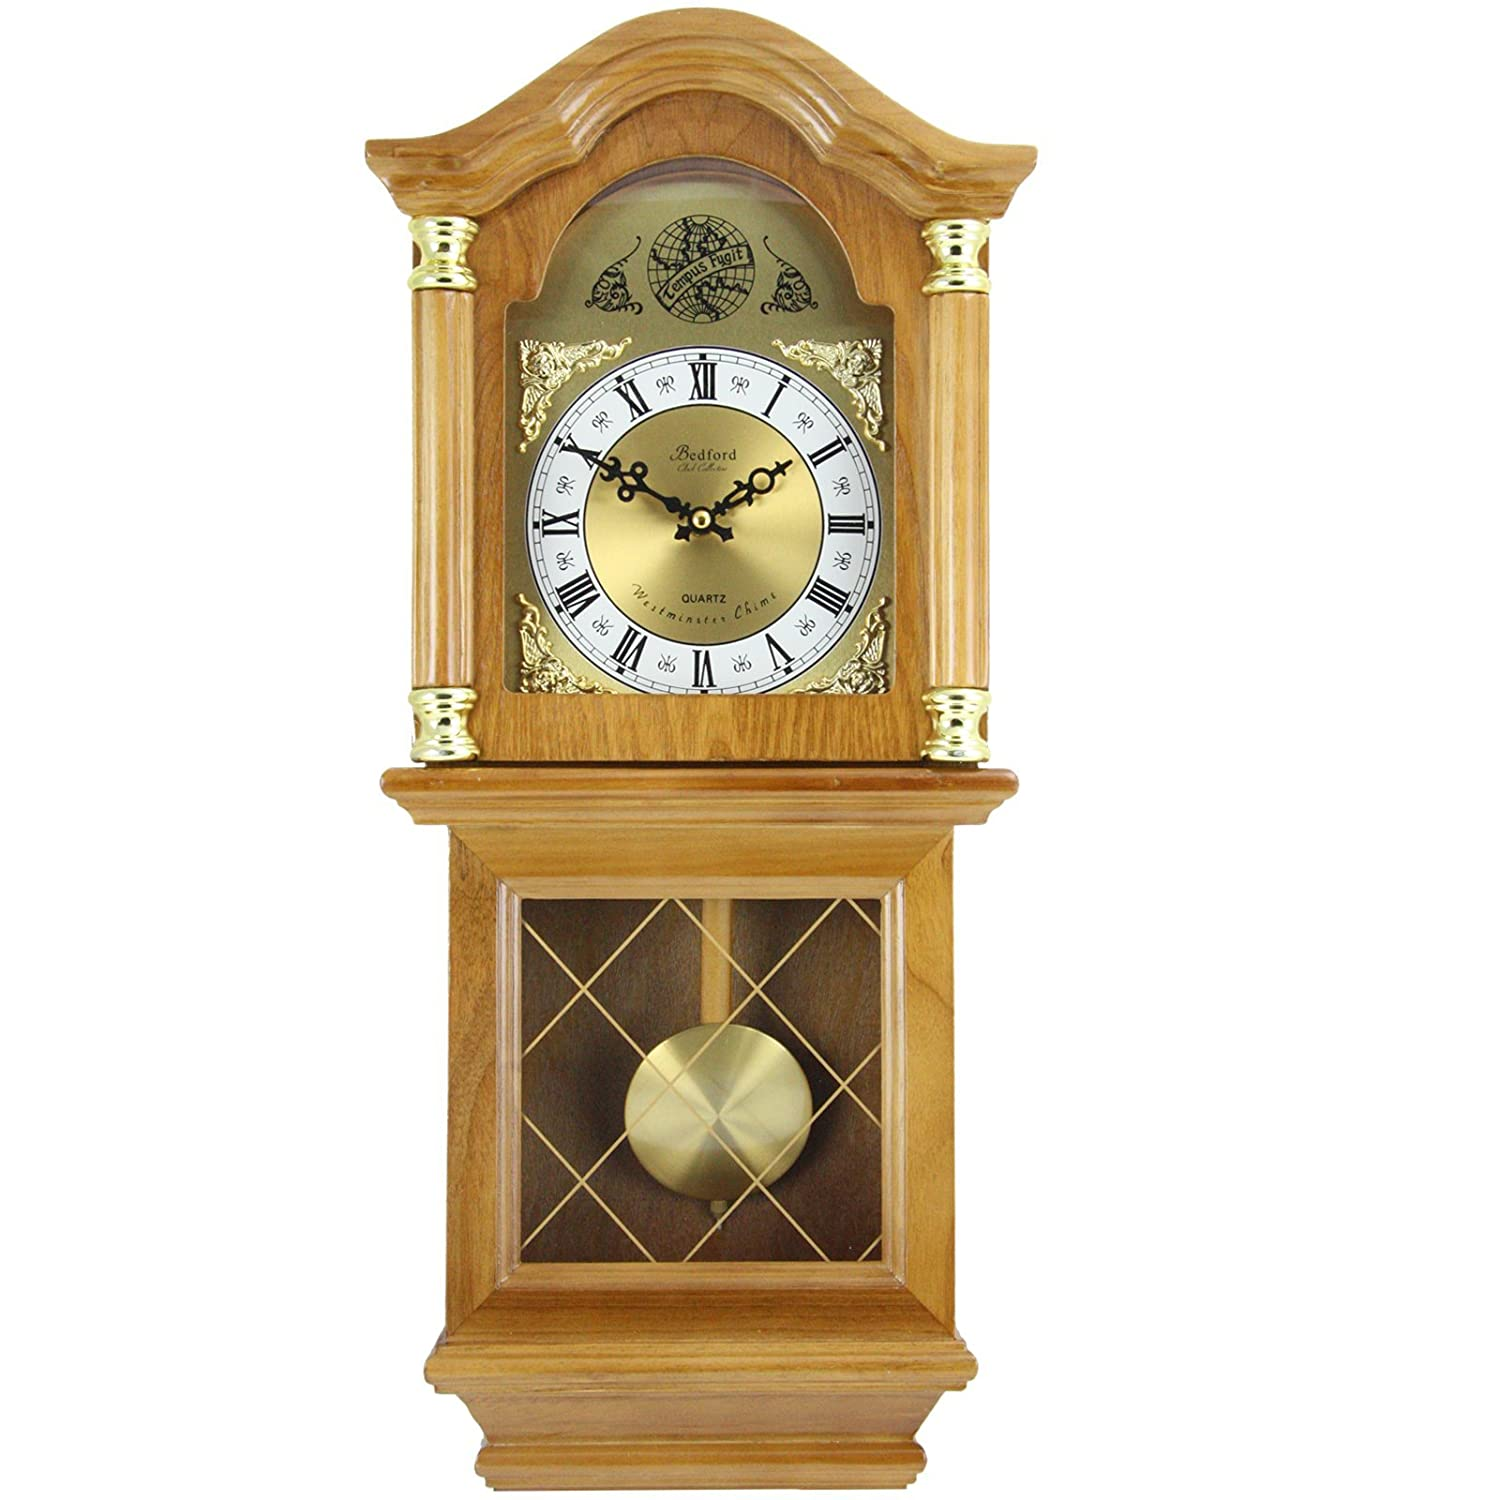 Bedford Clock Collection Classic Chiming Wall Clock with Swinging Pendulum,  Golden Oak